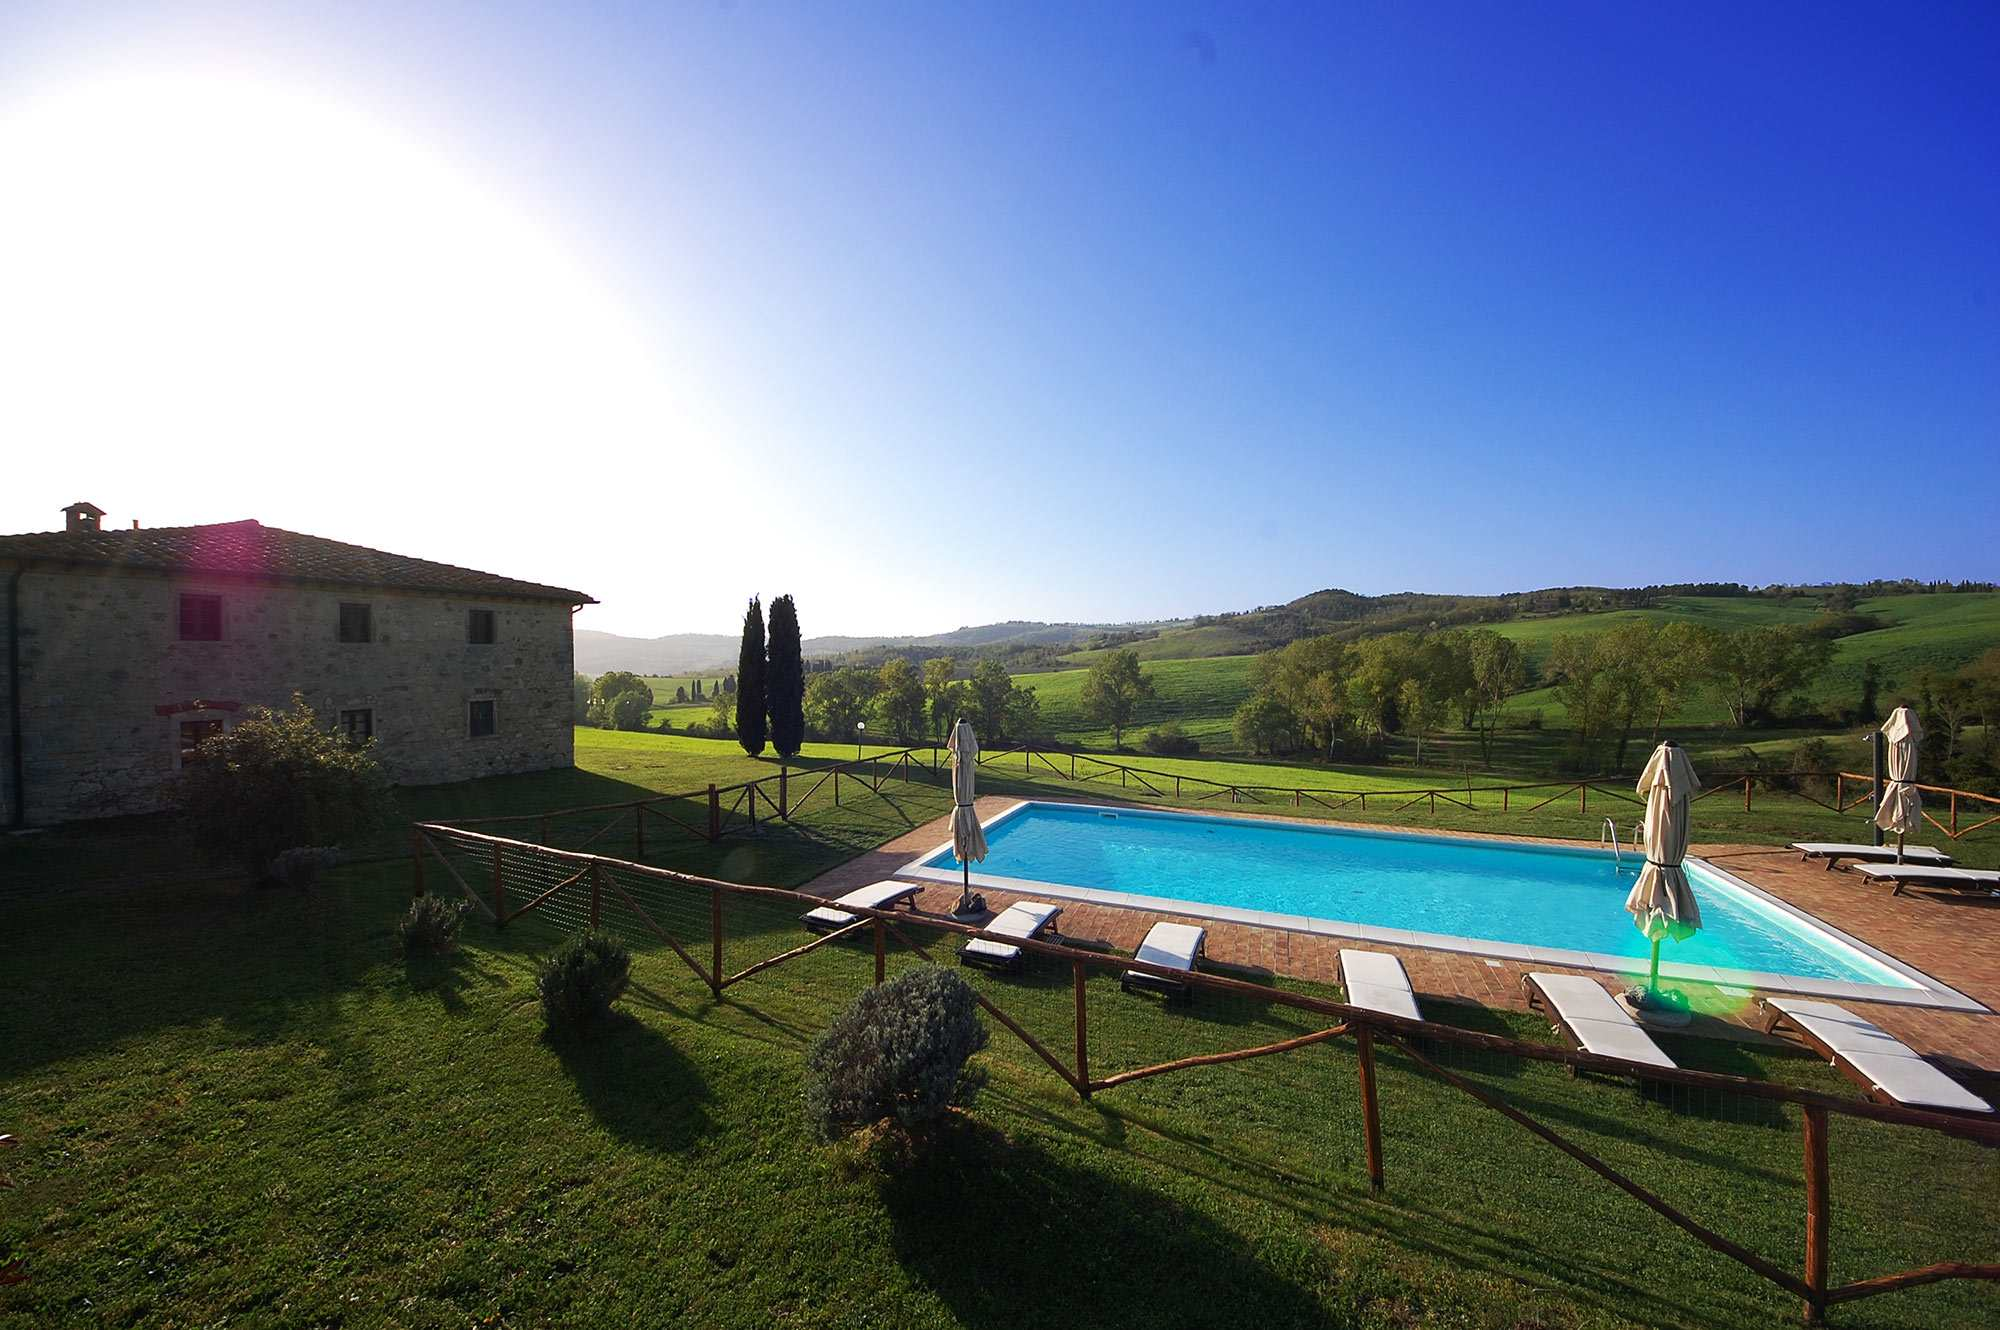 rent villa in Tuscany 8 persons